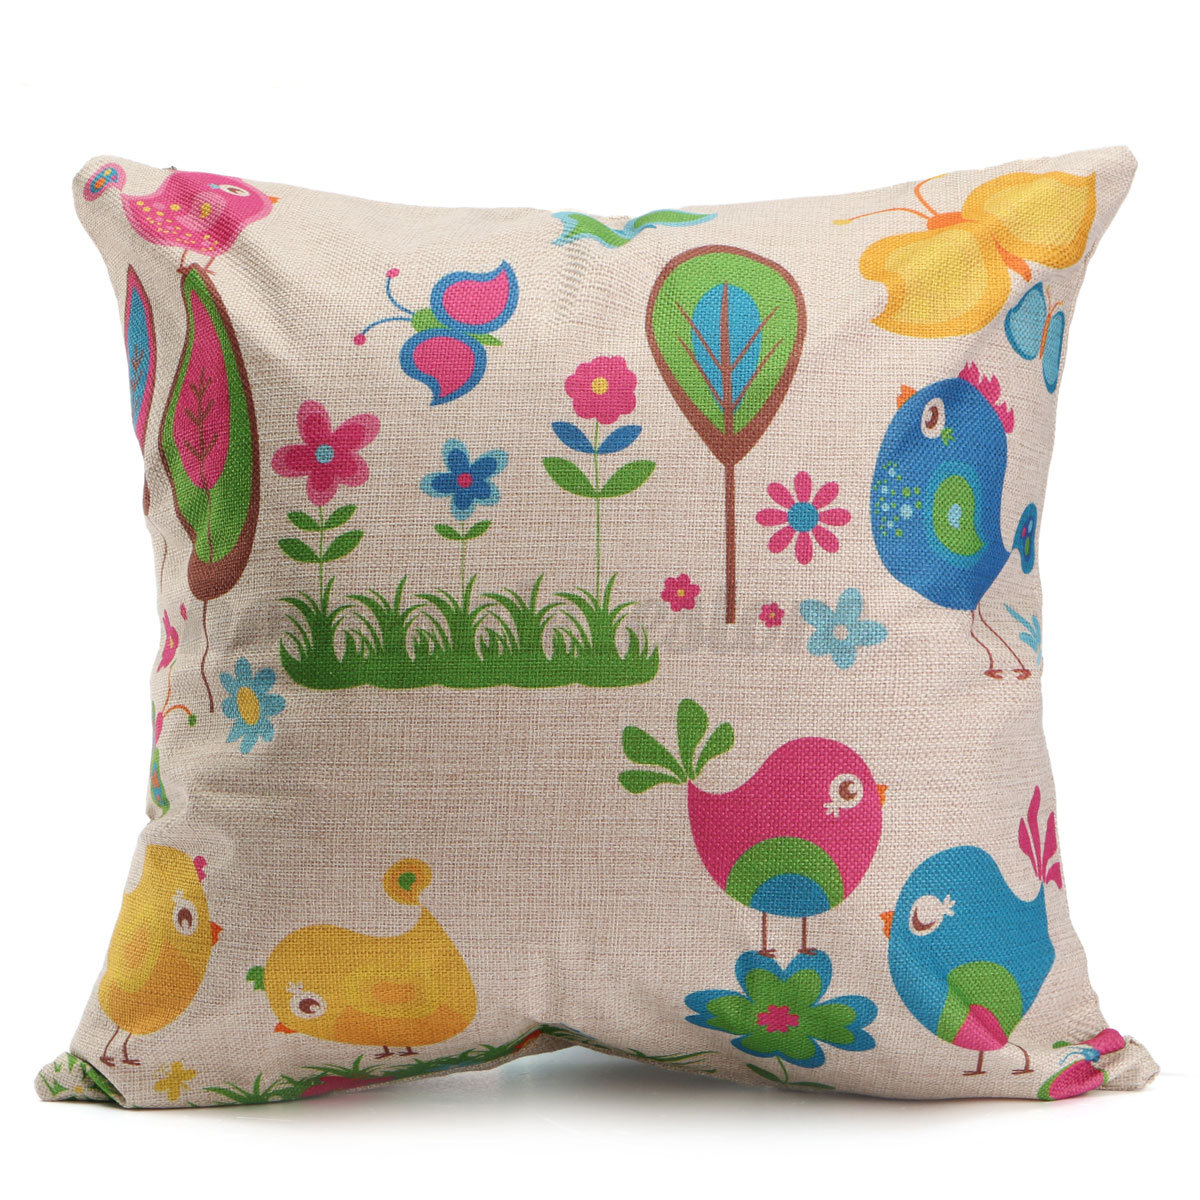 Decorative Cushions For Bedrooms : Vintage Simple Style Home Bedroom Decor Seat Back Pillow Case Cushion Cover eBay